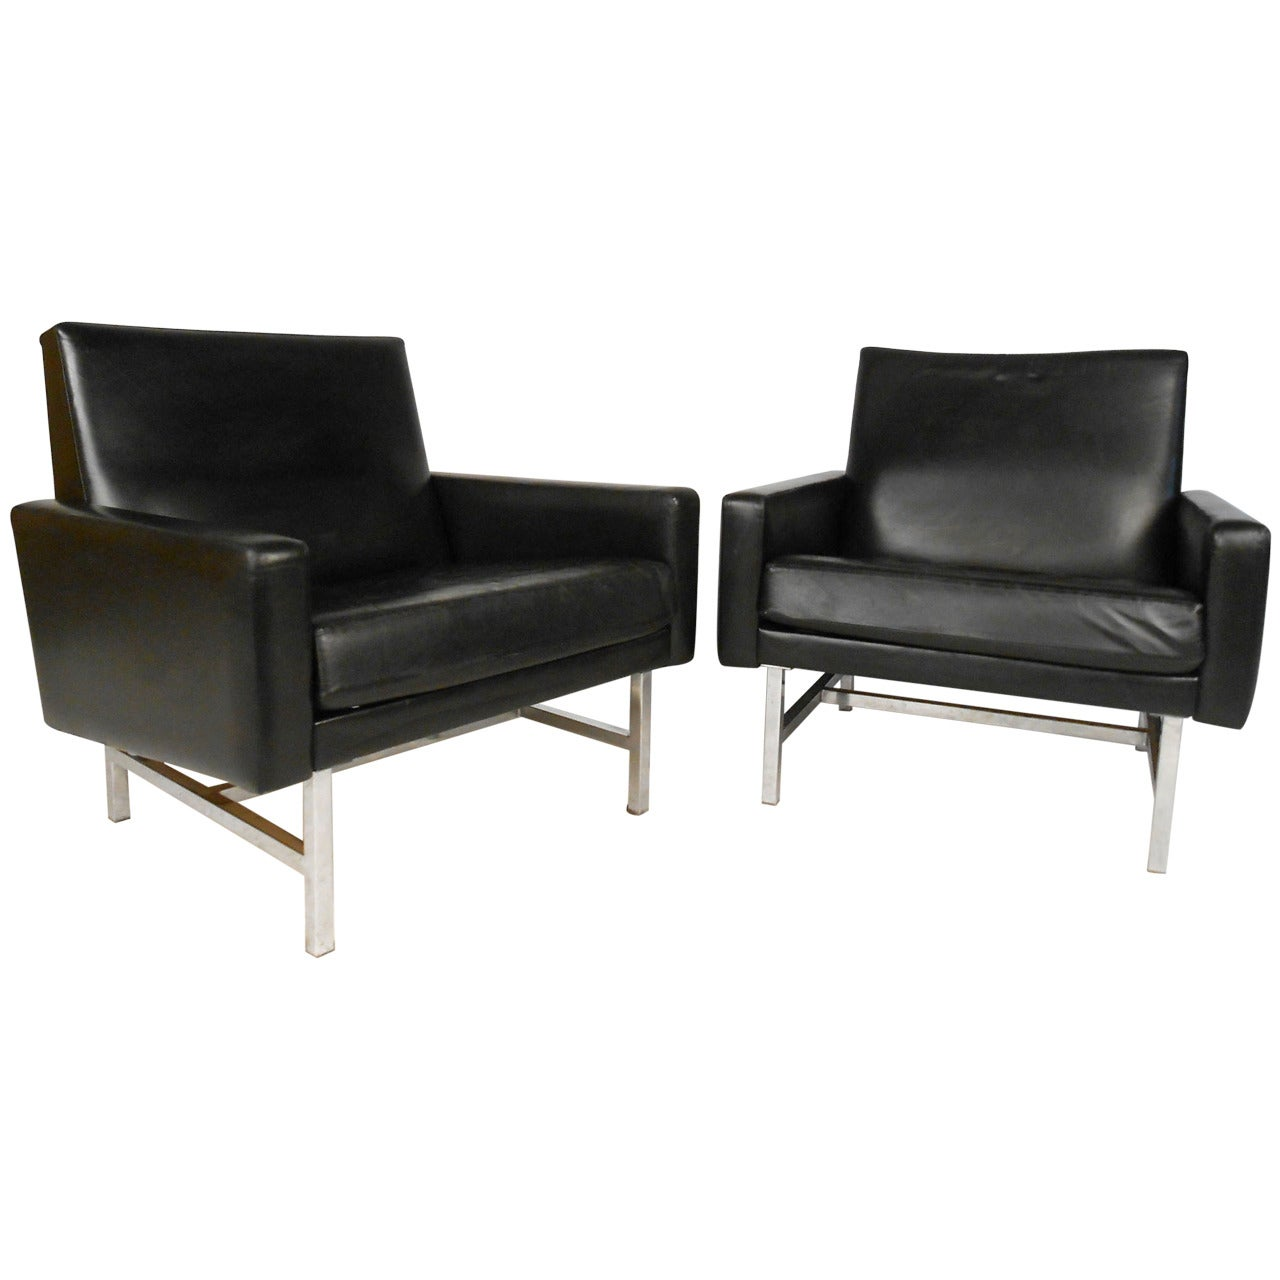 Pair Vintage Leather Lounge Chairs by Thonet